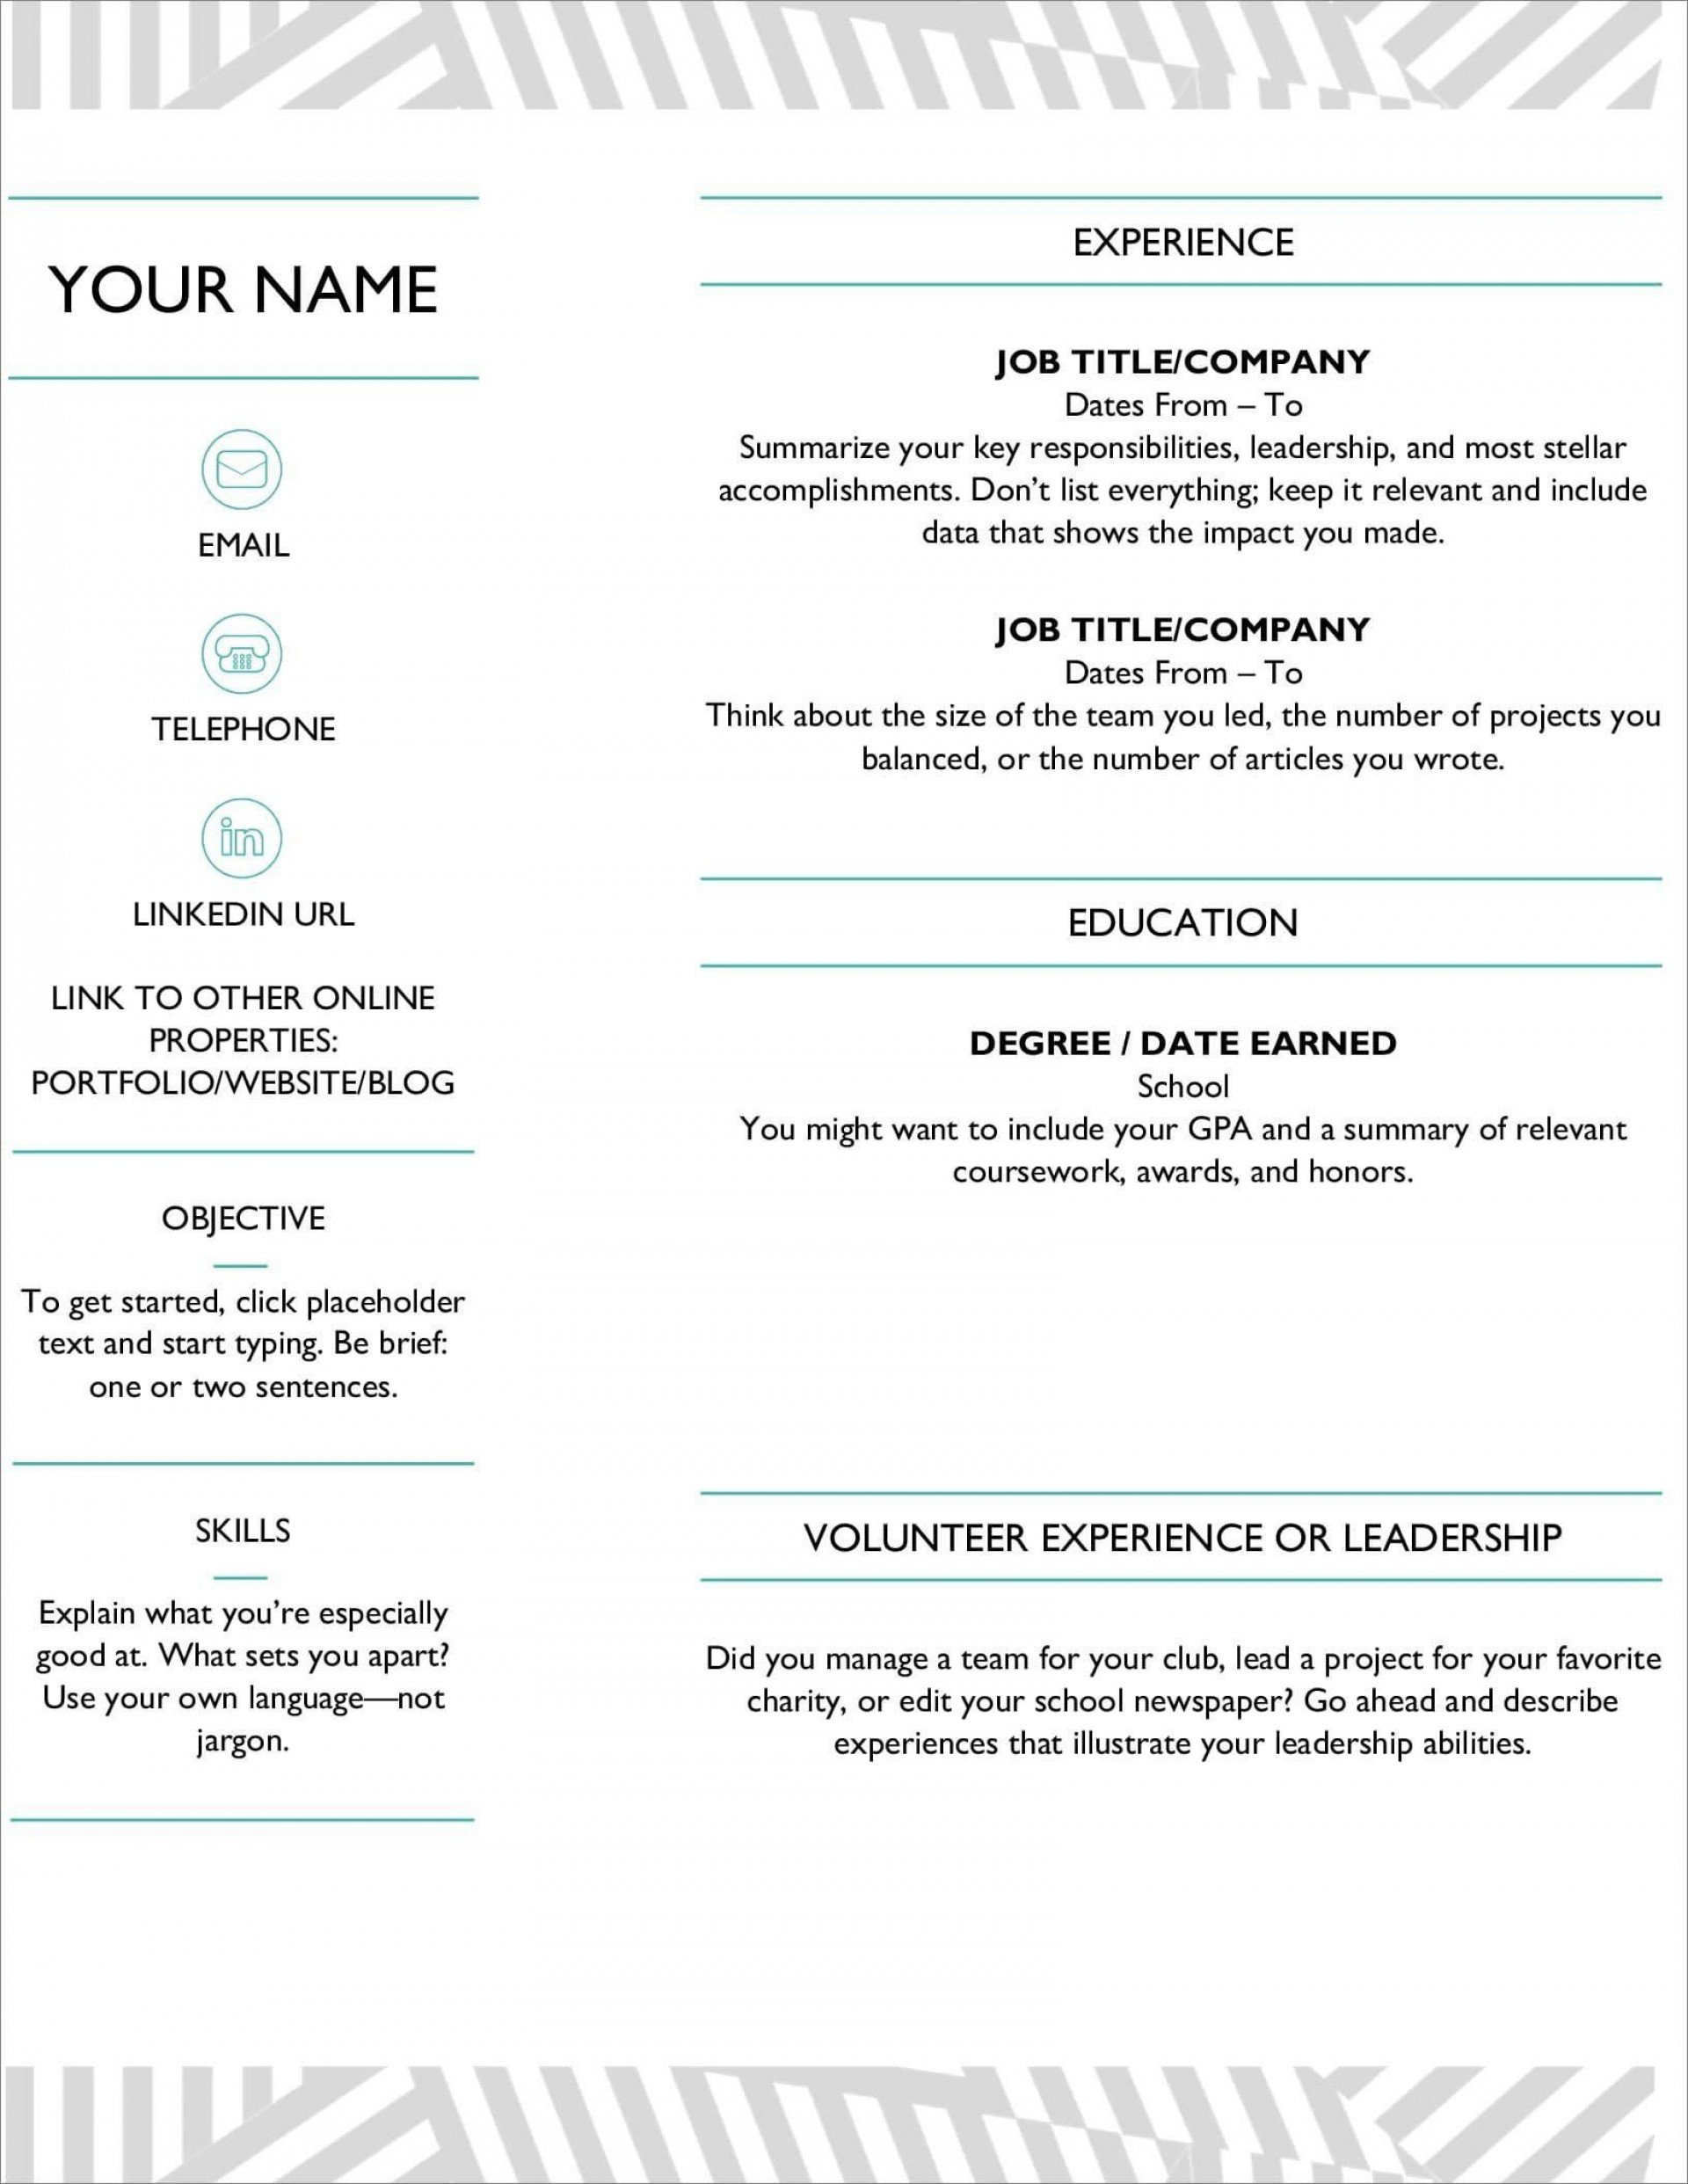 009 Stupendou Entry Level Resume Template Word Highest Quality  Free For1920